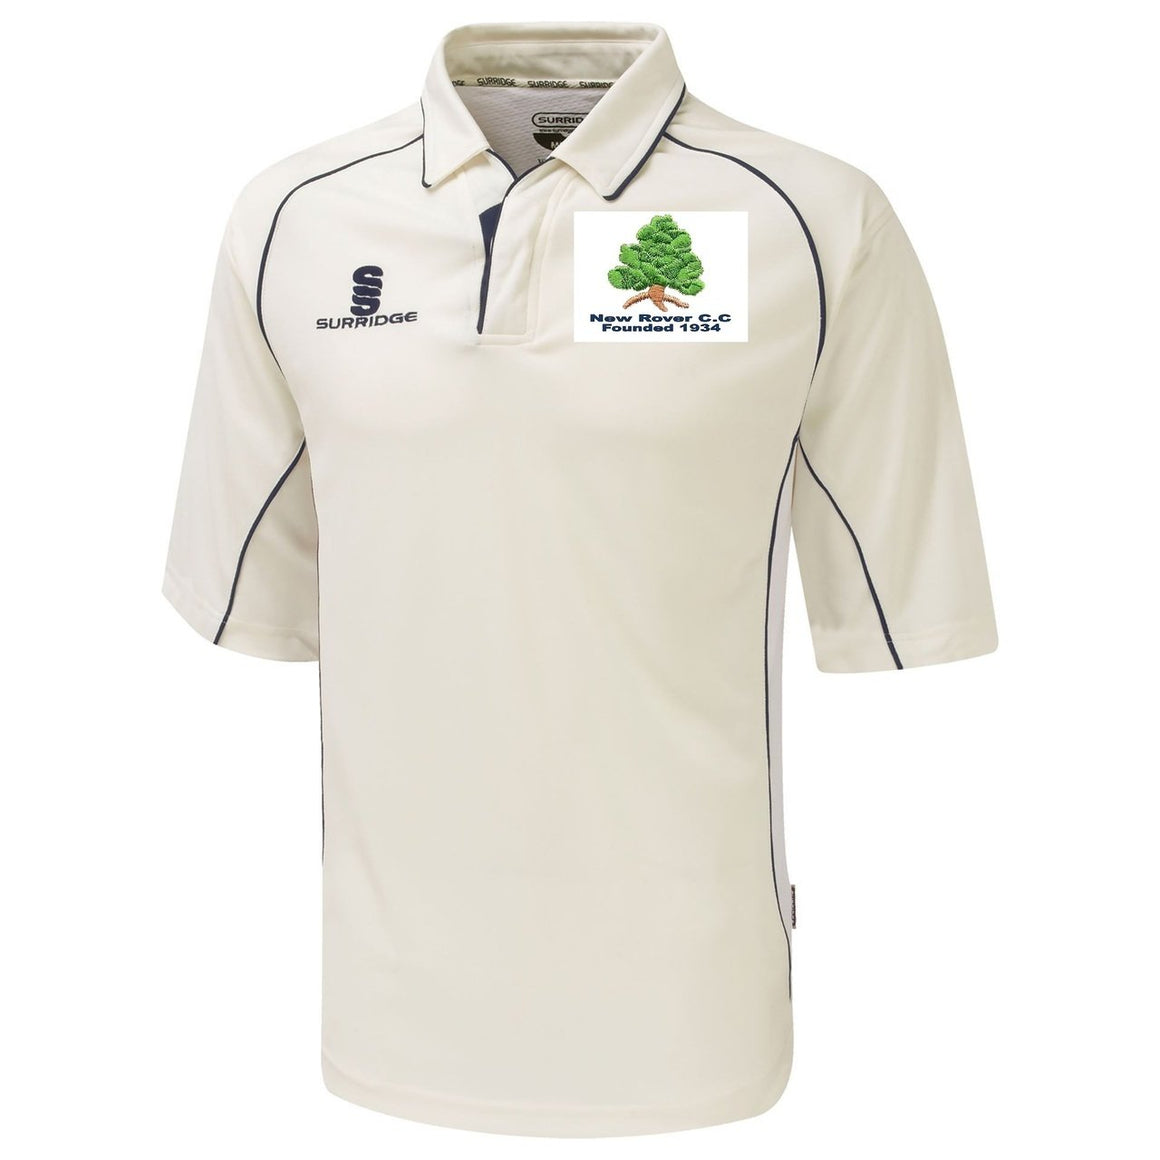 New Rover CC Playing Shirt (3/4 Sleeve)